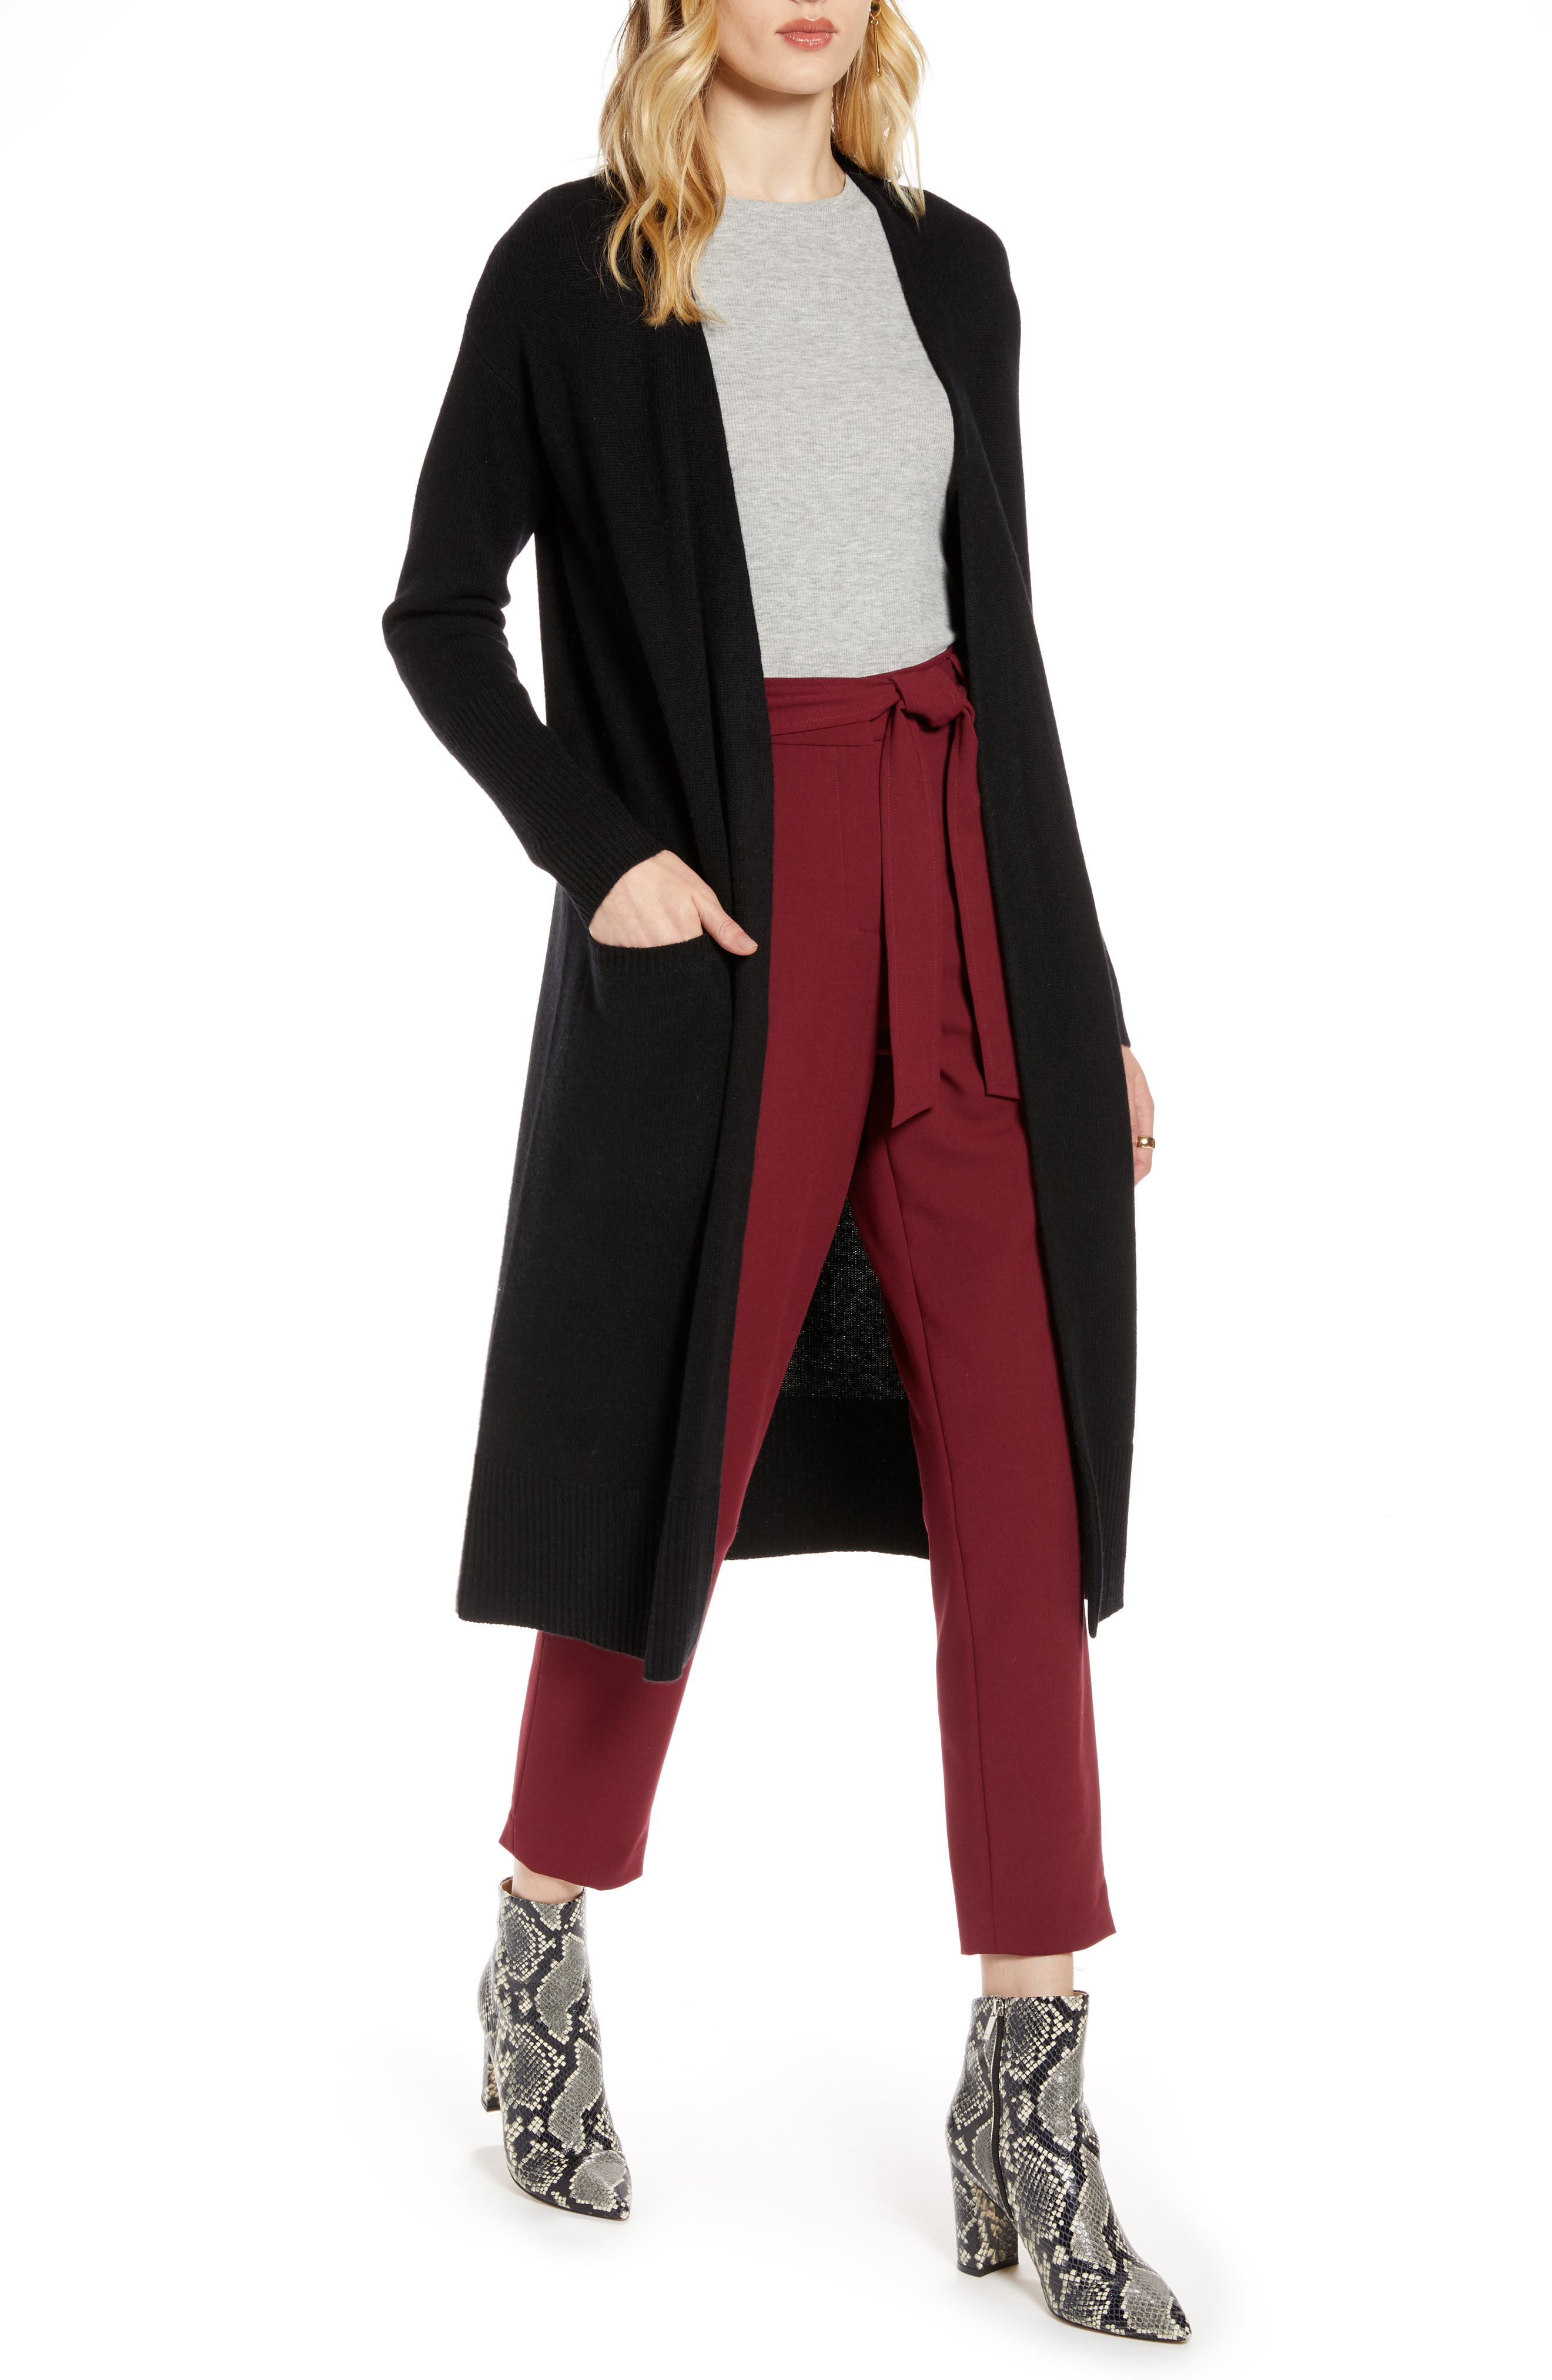 As the weather cools, wool and cashmere come calling, so indulge in the cozy comfort (and handy pockets) of this cardigan, knit long for maximum luxuriating. Style Name: Halogen Wool & Cashmere Long Cardigan (Regular & Petite). Style Number: 5795249. Available in stores.